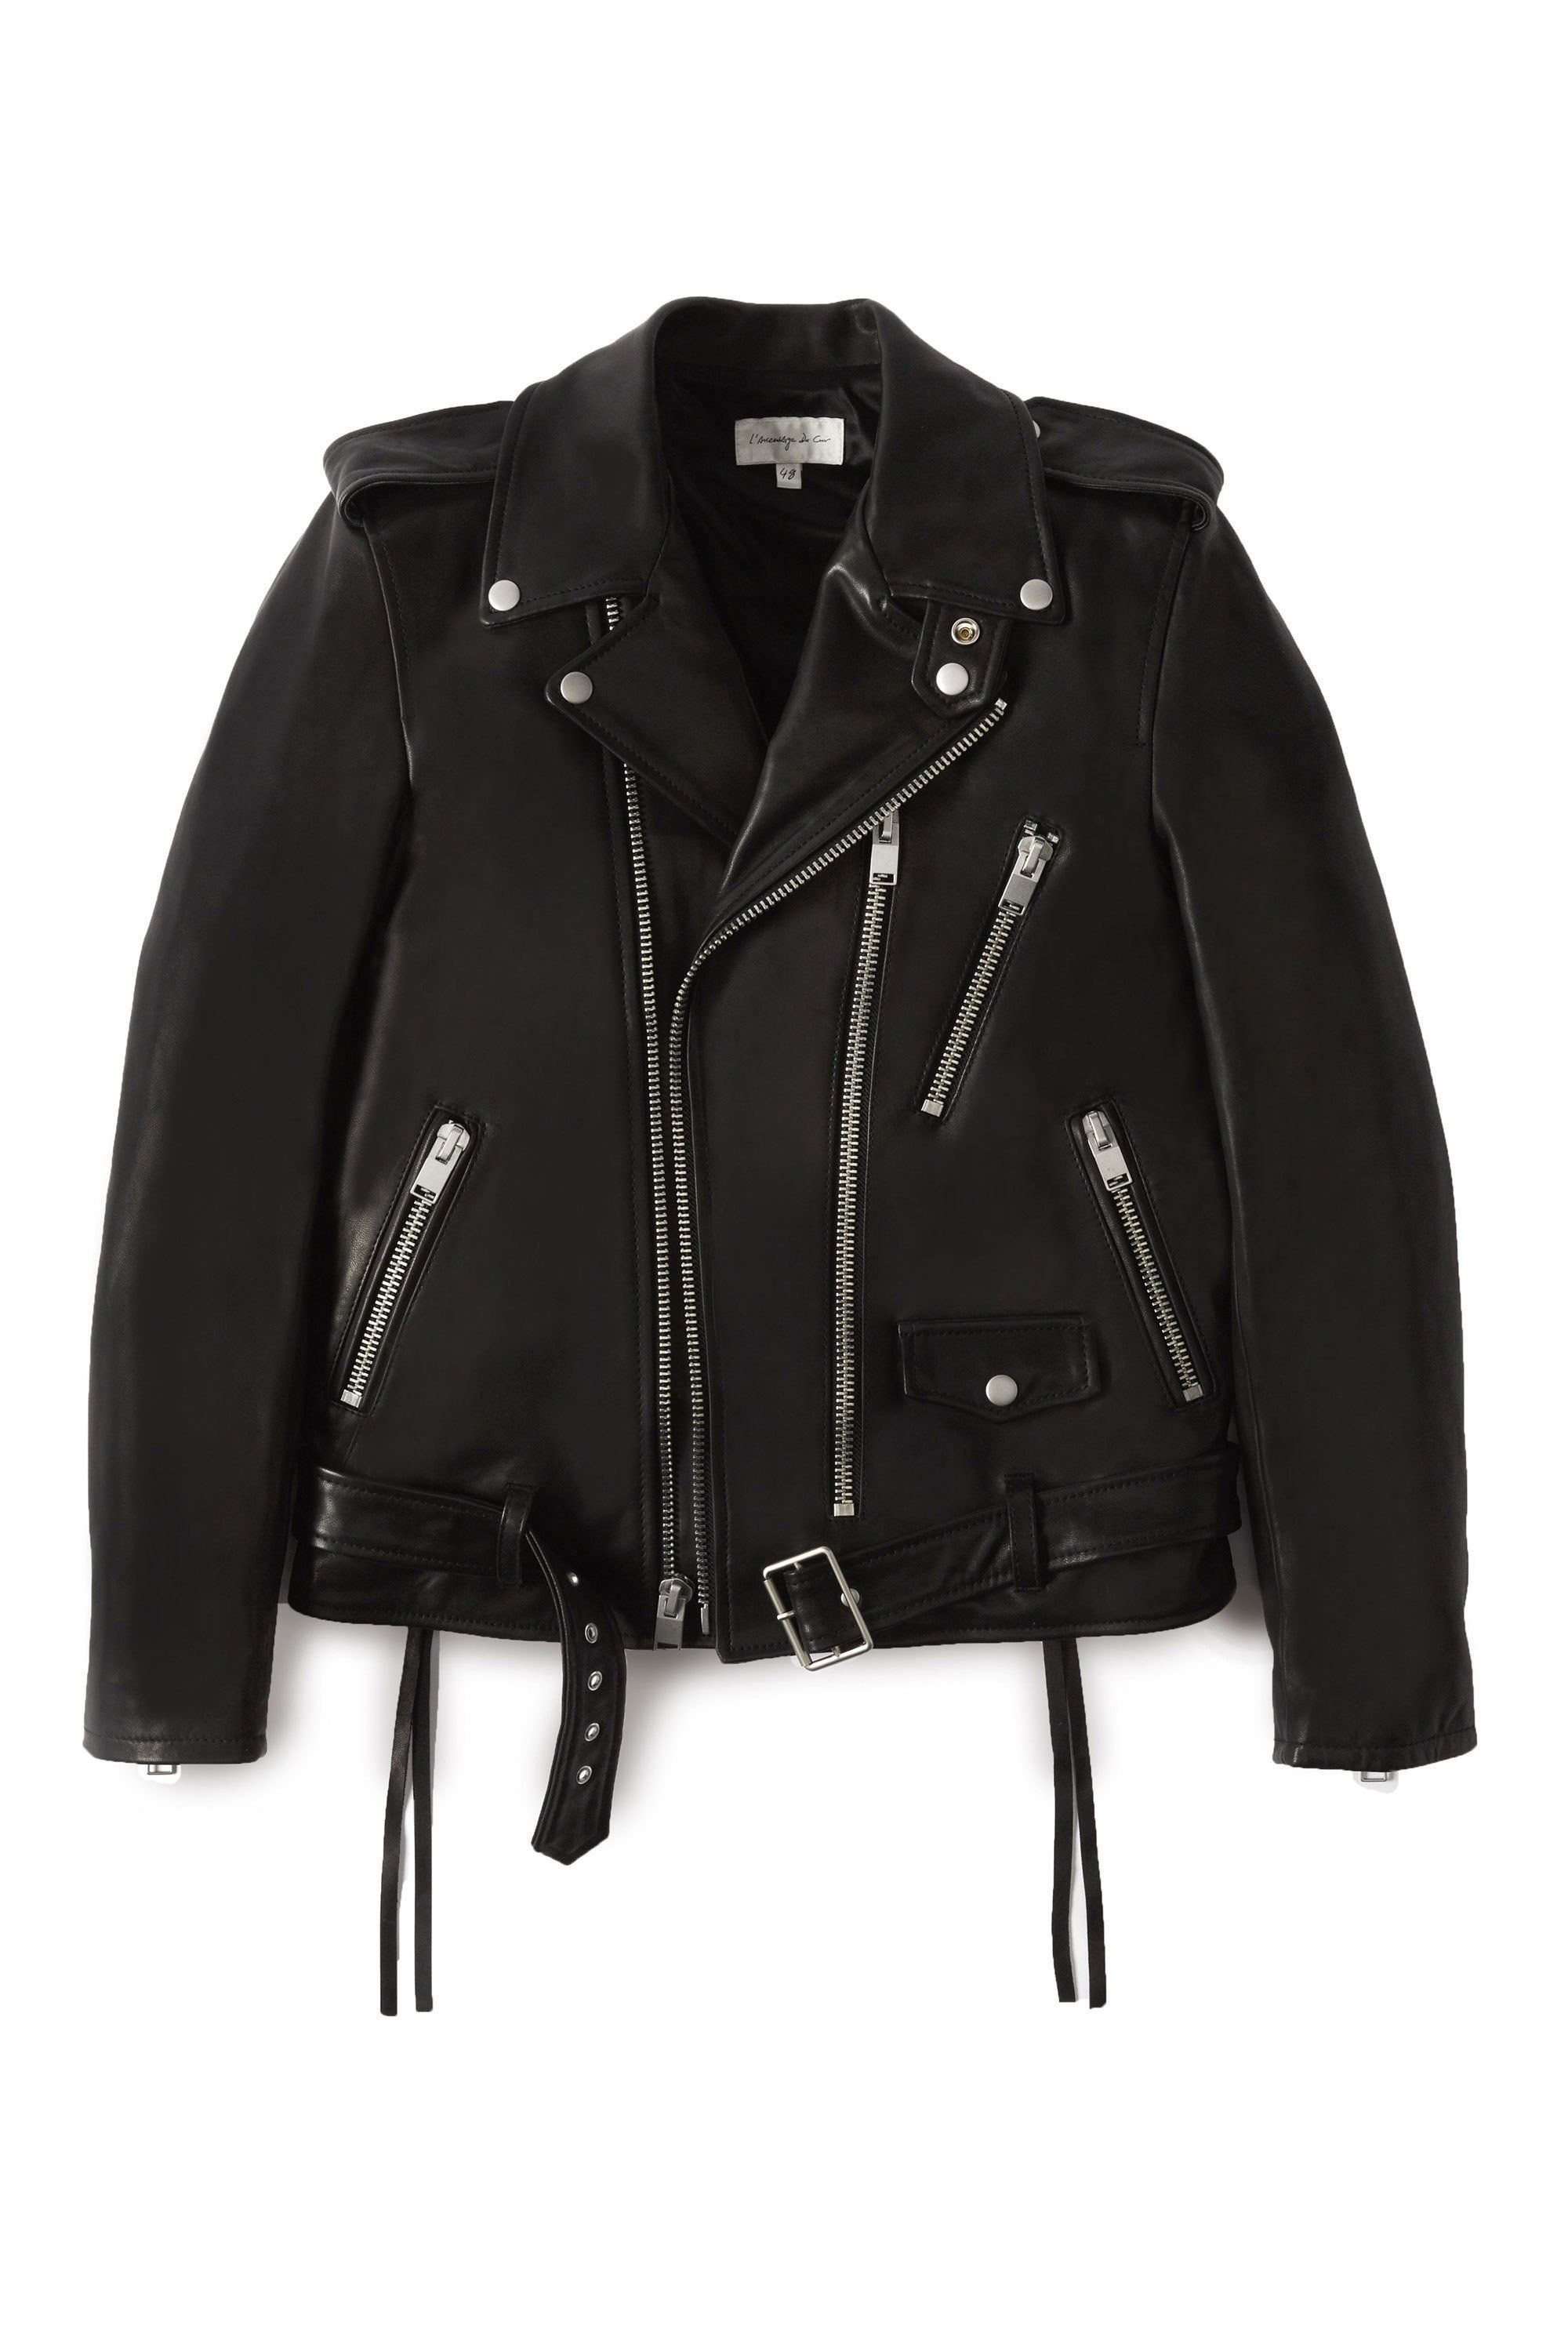 305213dd5f No. 1 Moto - Black | Must Have | Jackets, Leather, Motorcycle jacket